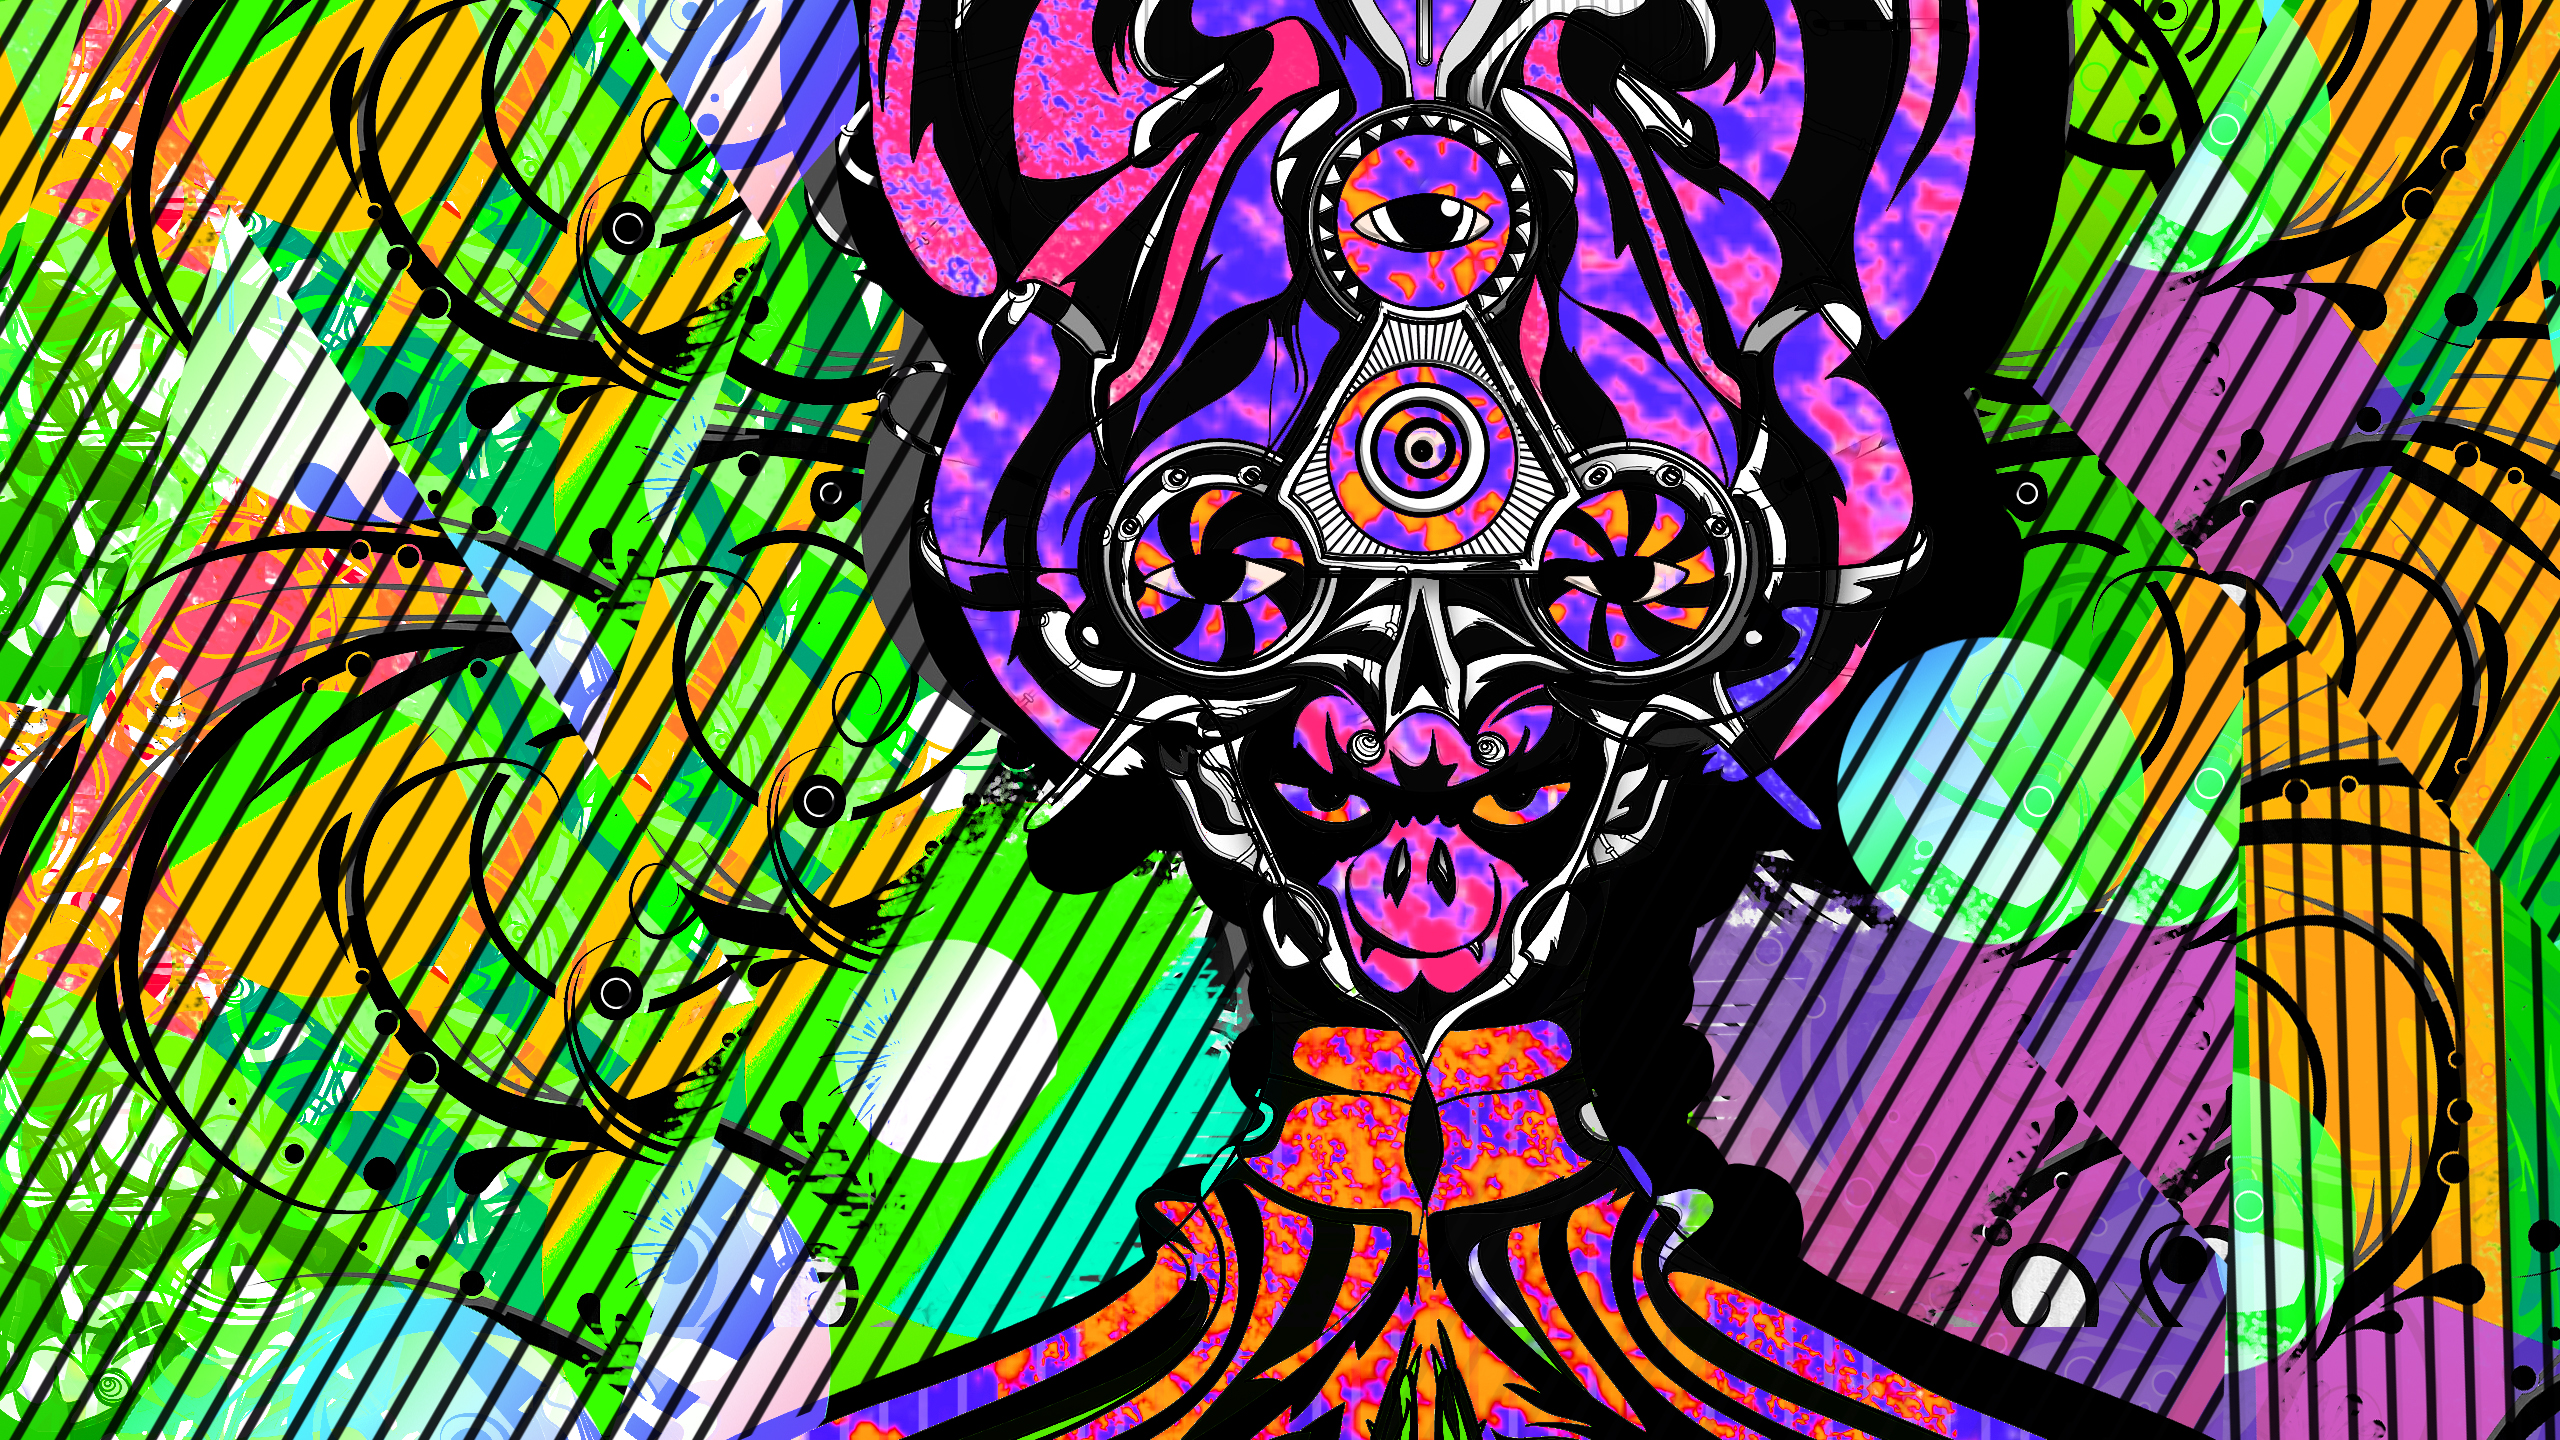 Psychedelic Hd Wallpaper 1920x1080